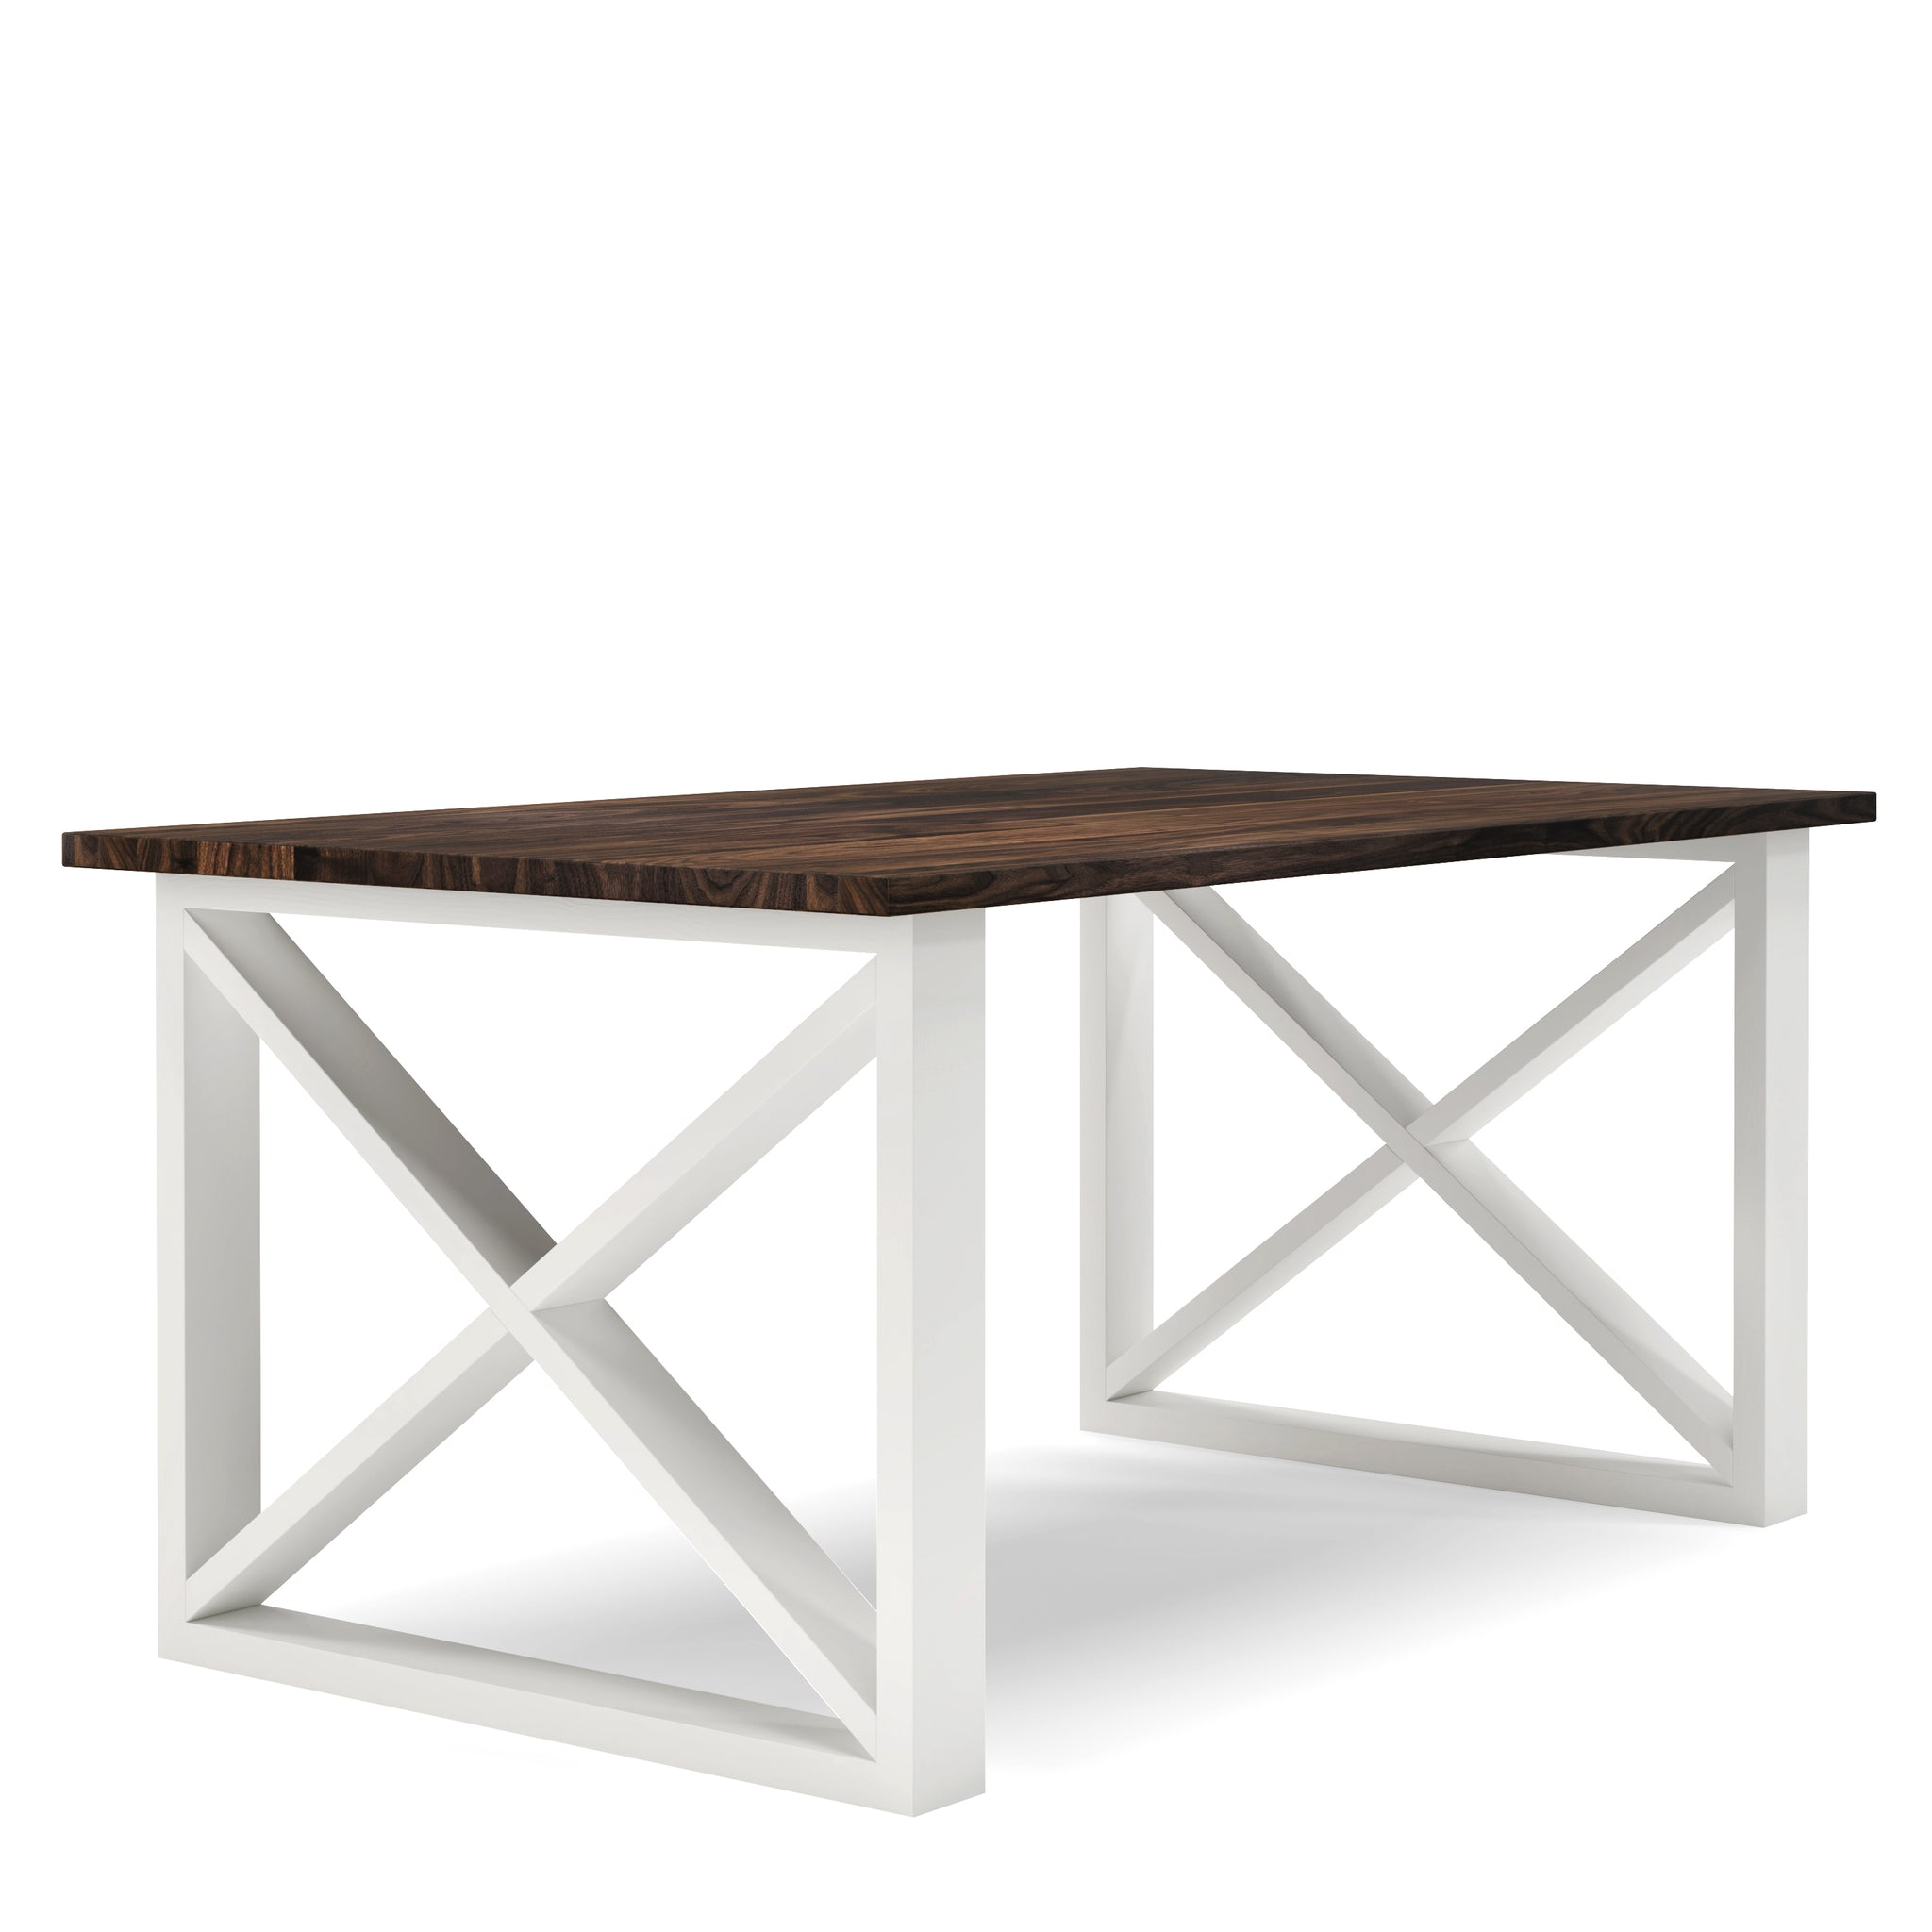 Table en bois massif noyer farmhouse